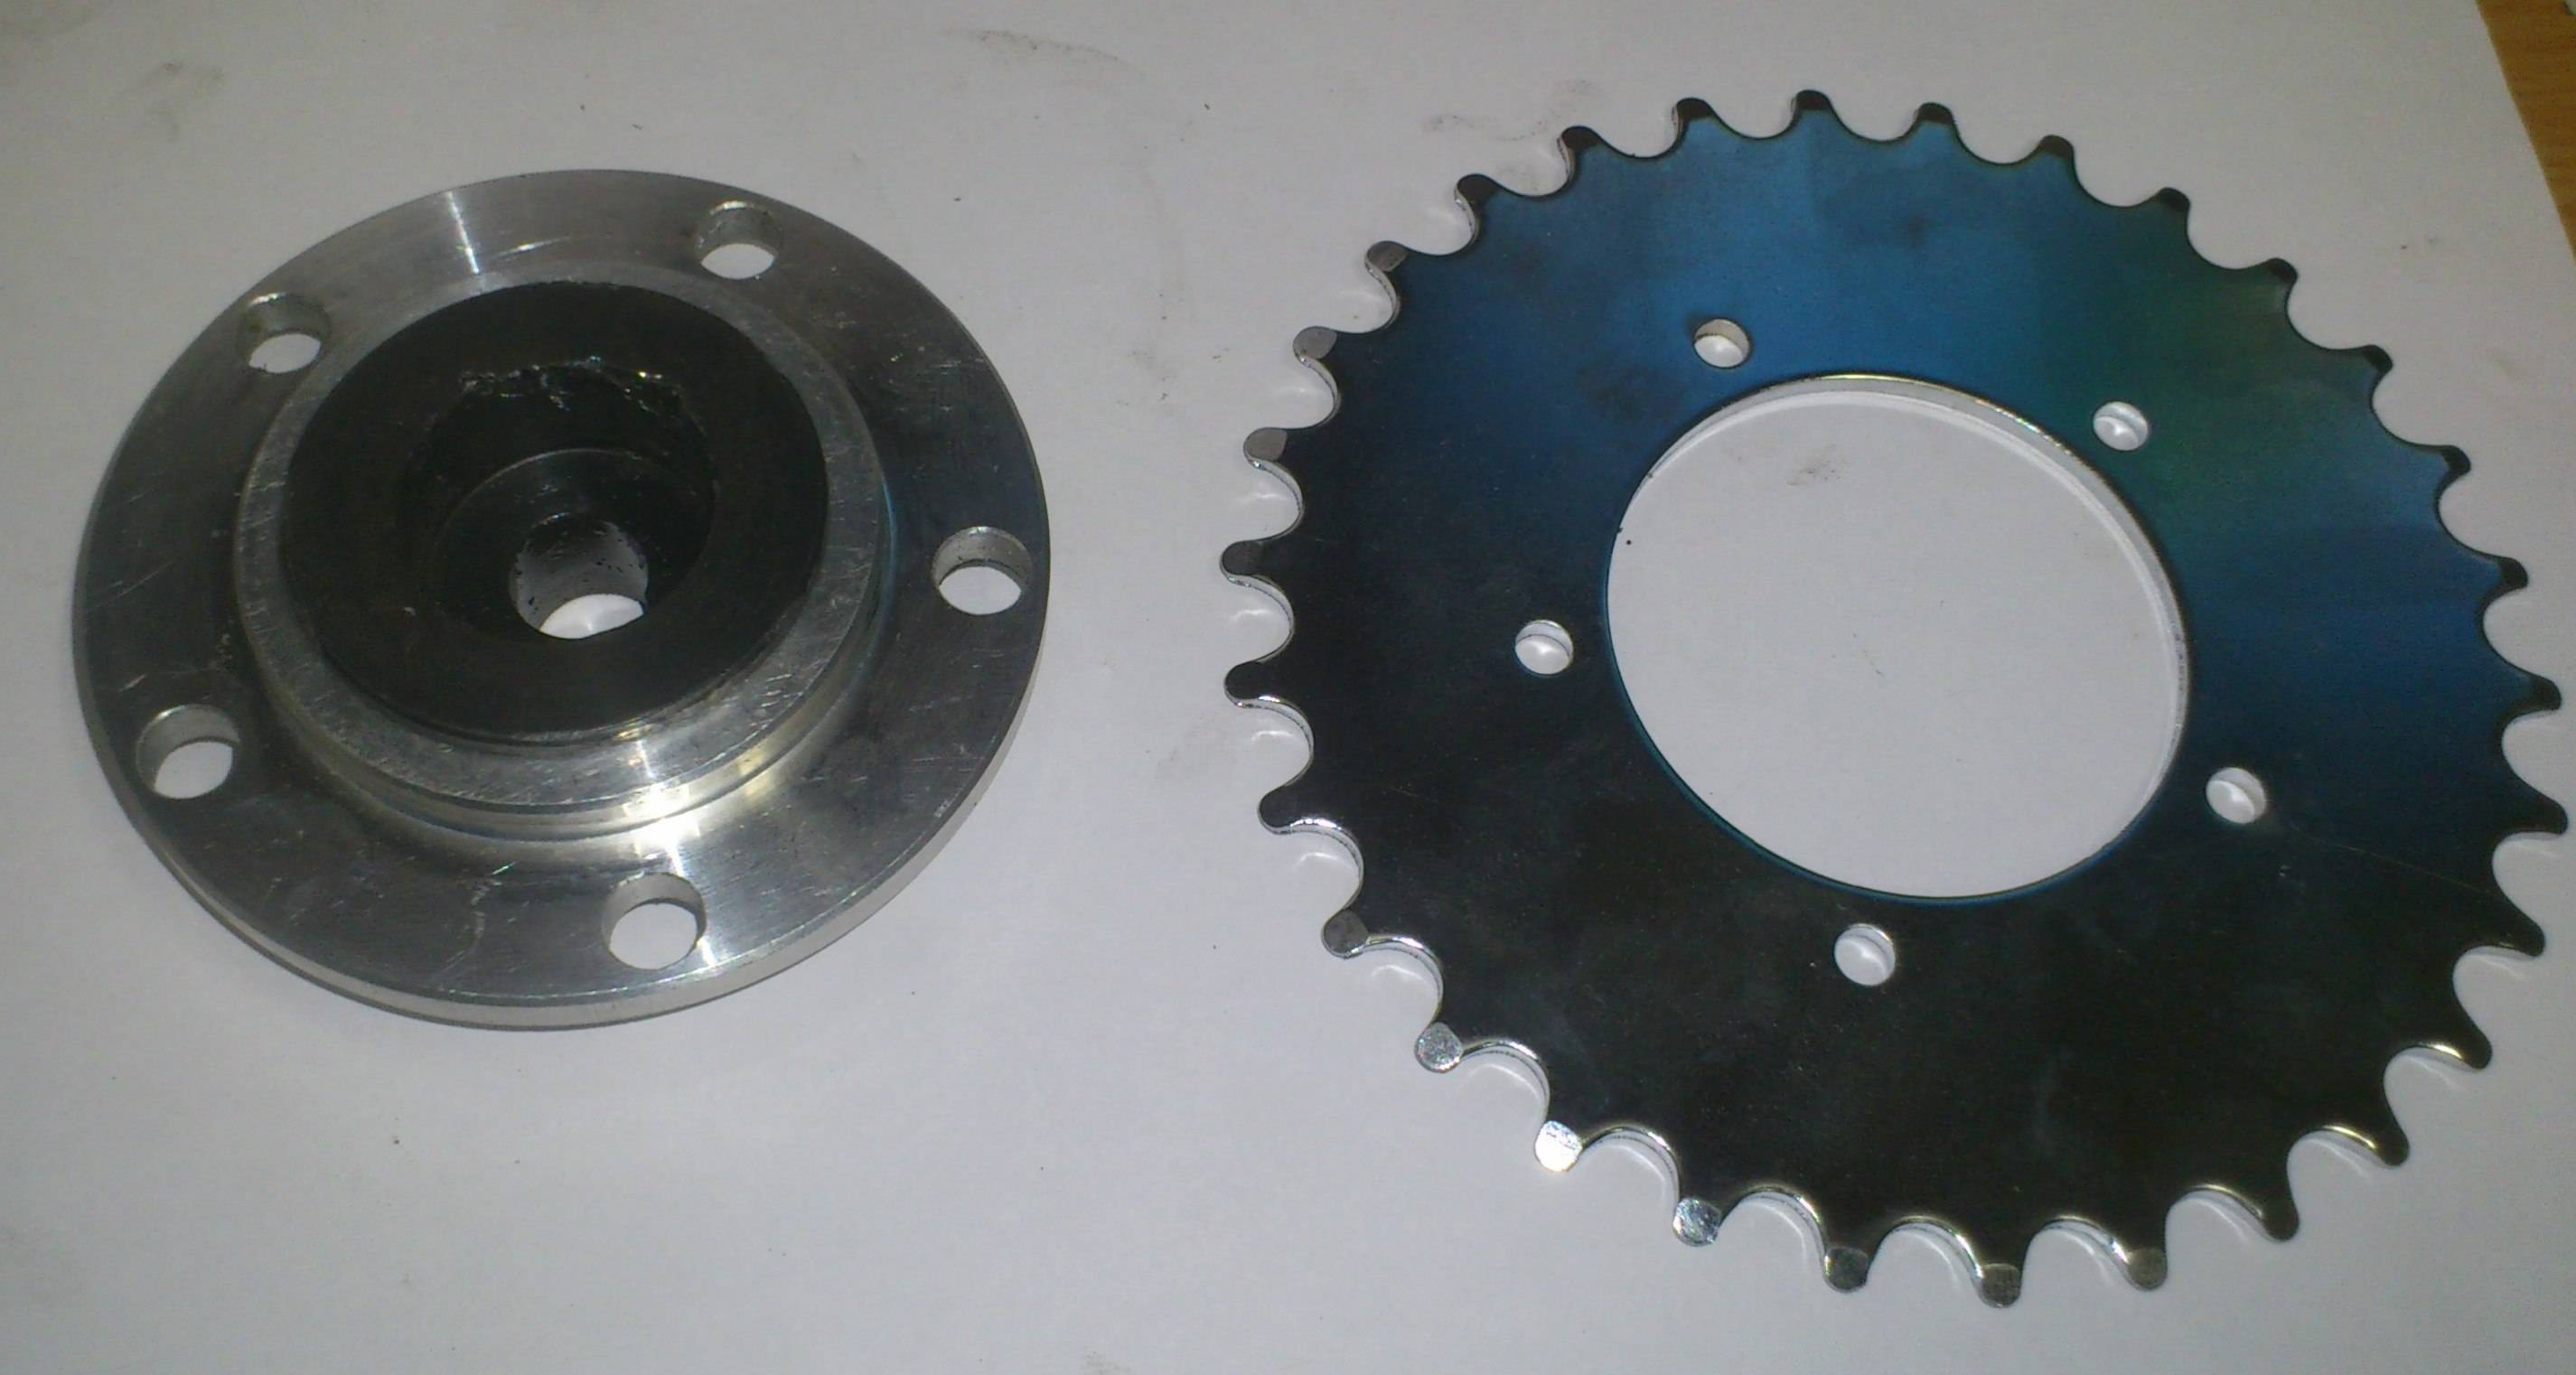 chain ring adapter with the original center nut scrwed